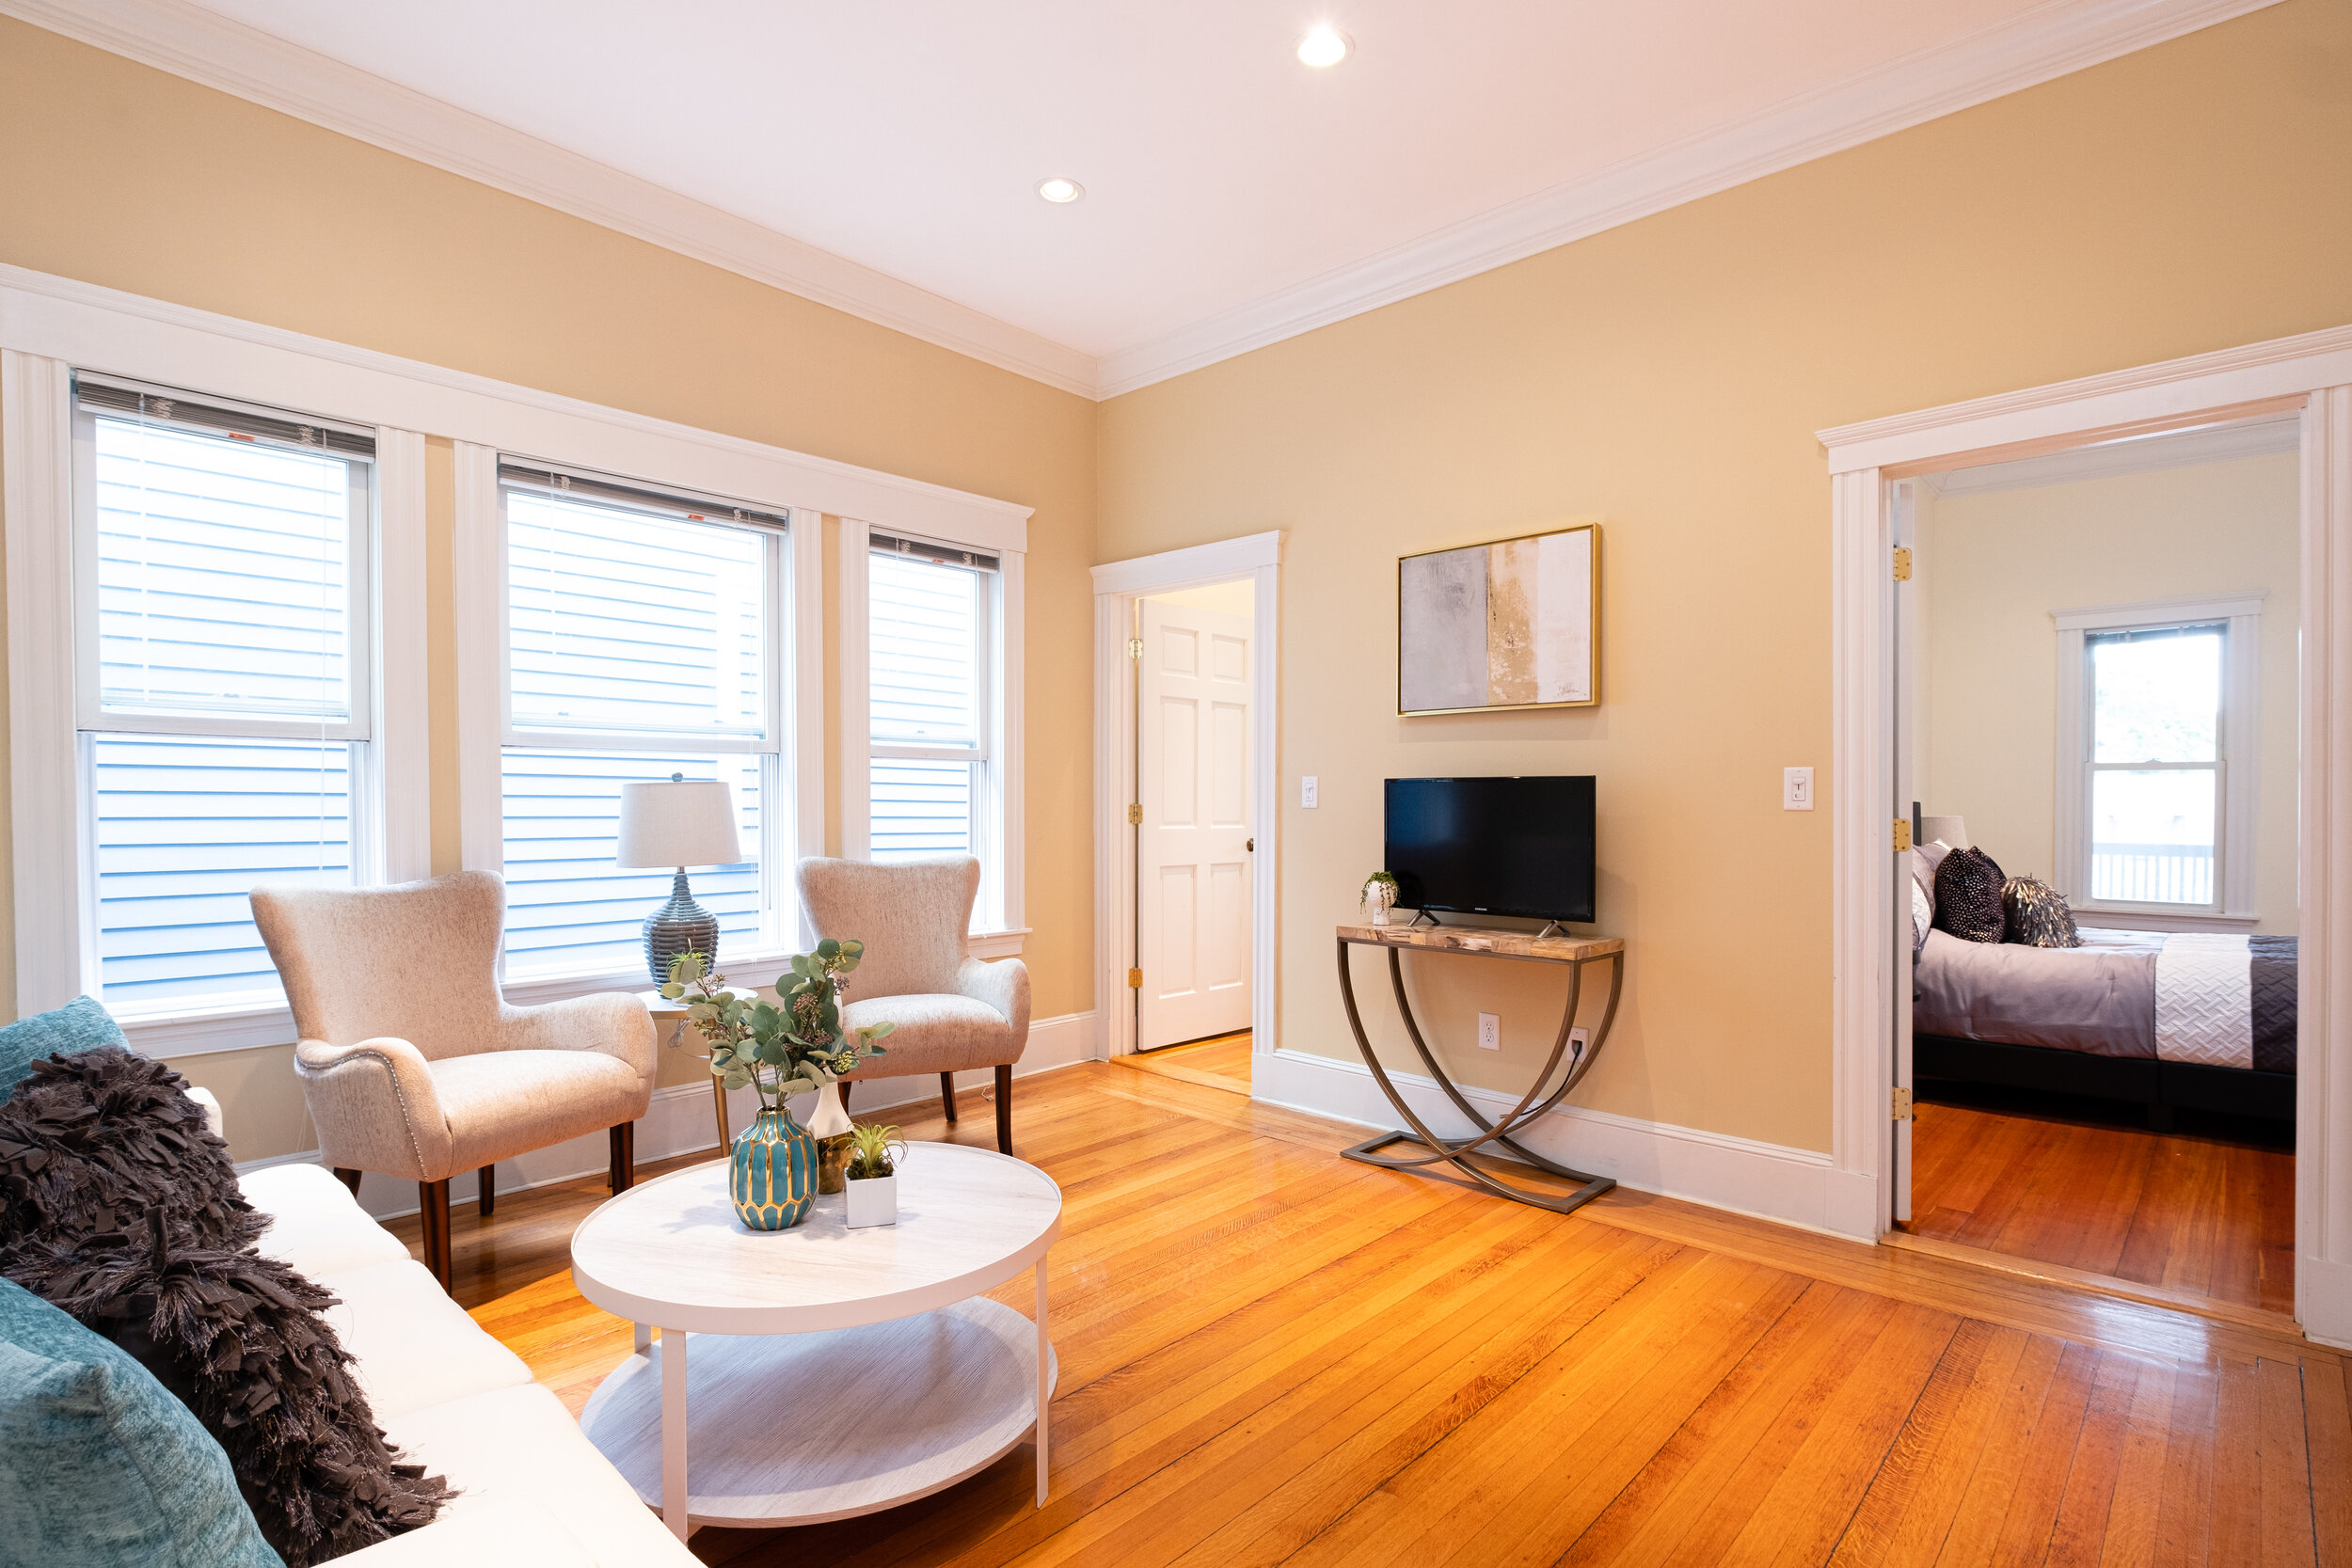 373 Broadway - Click to View